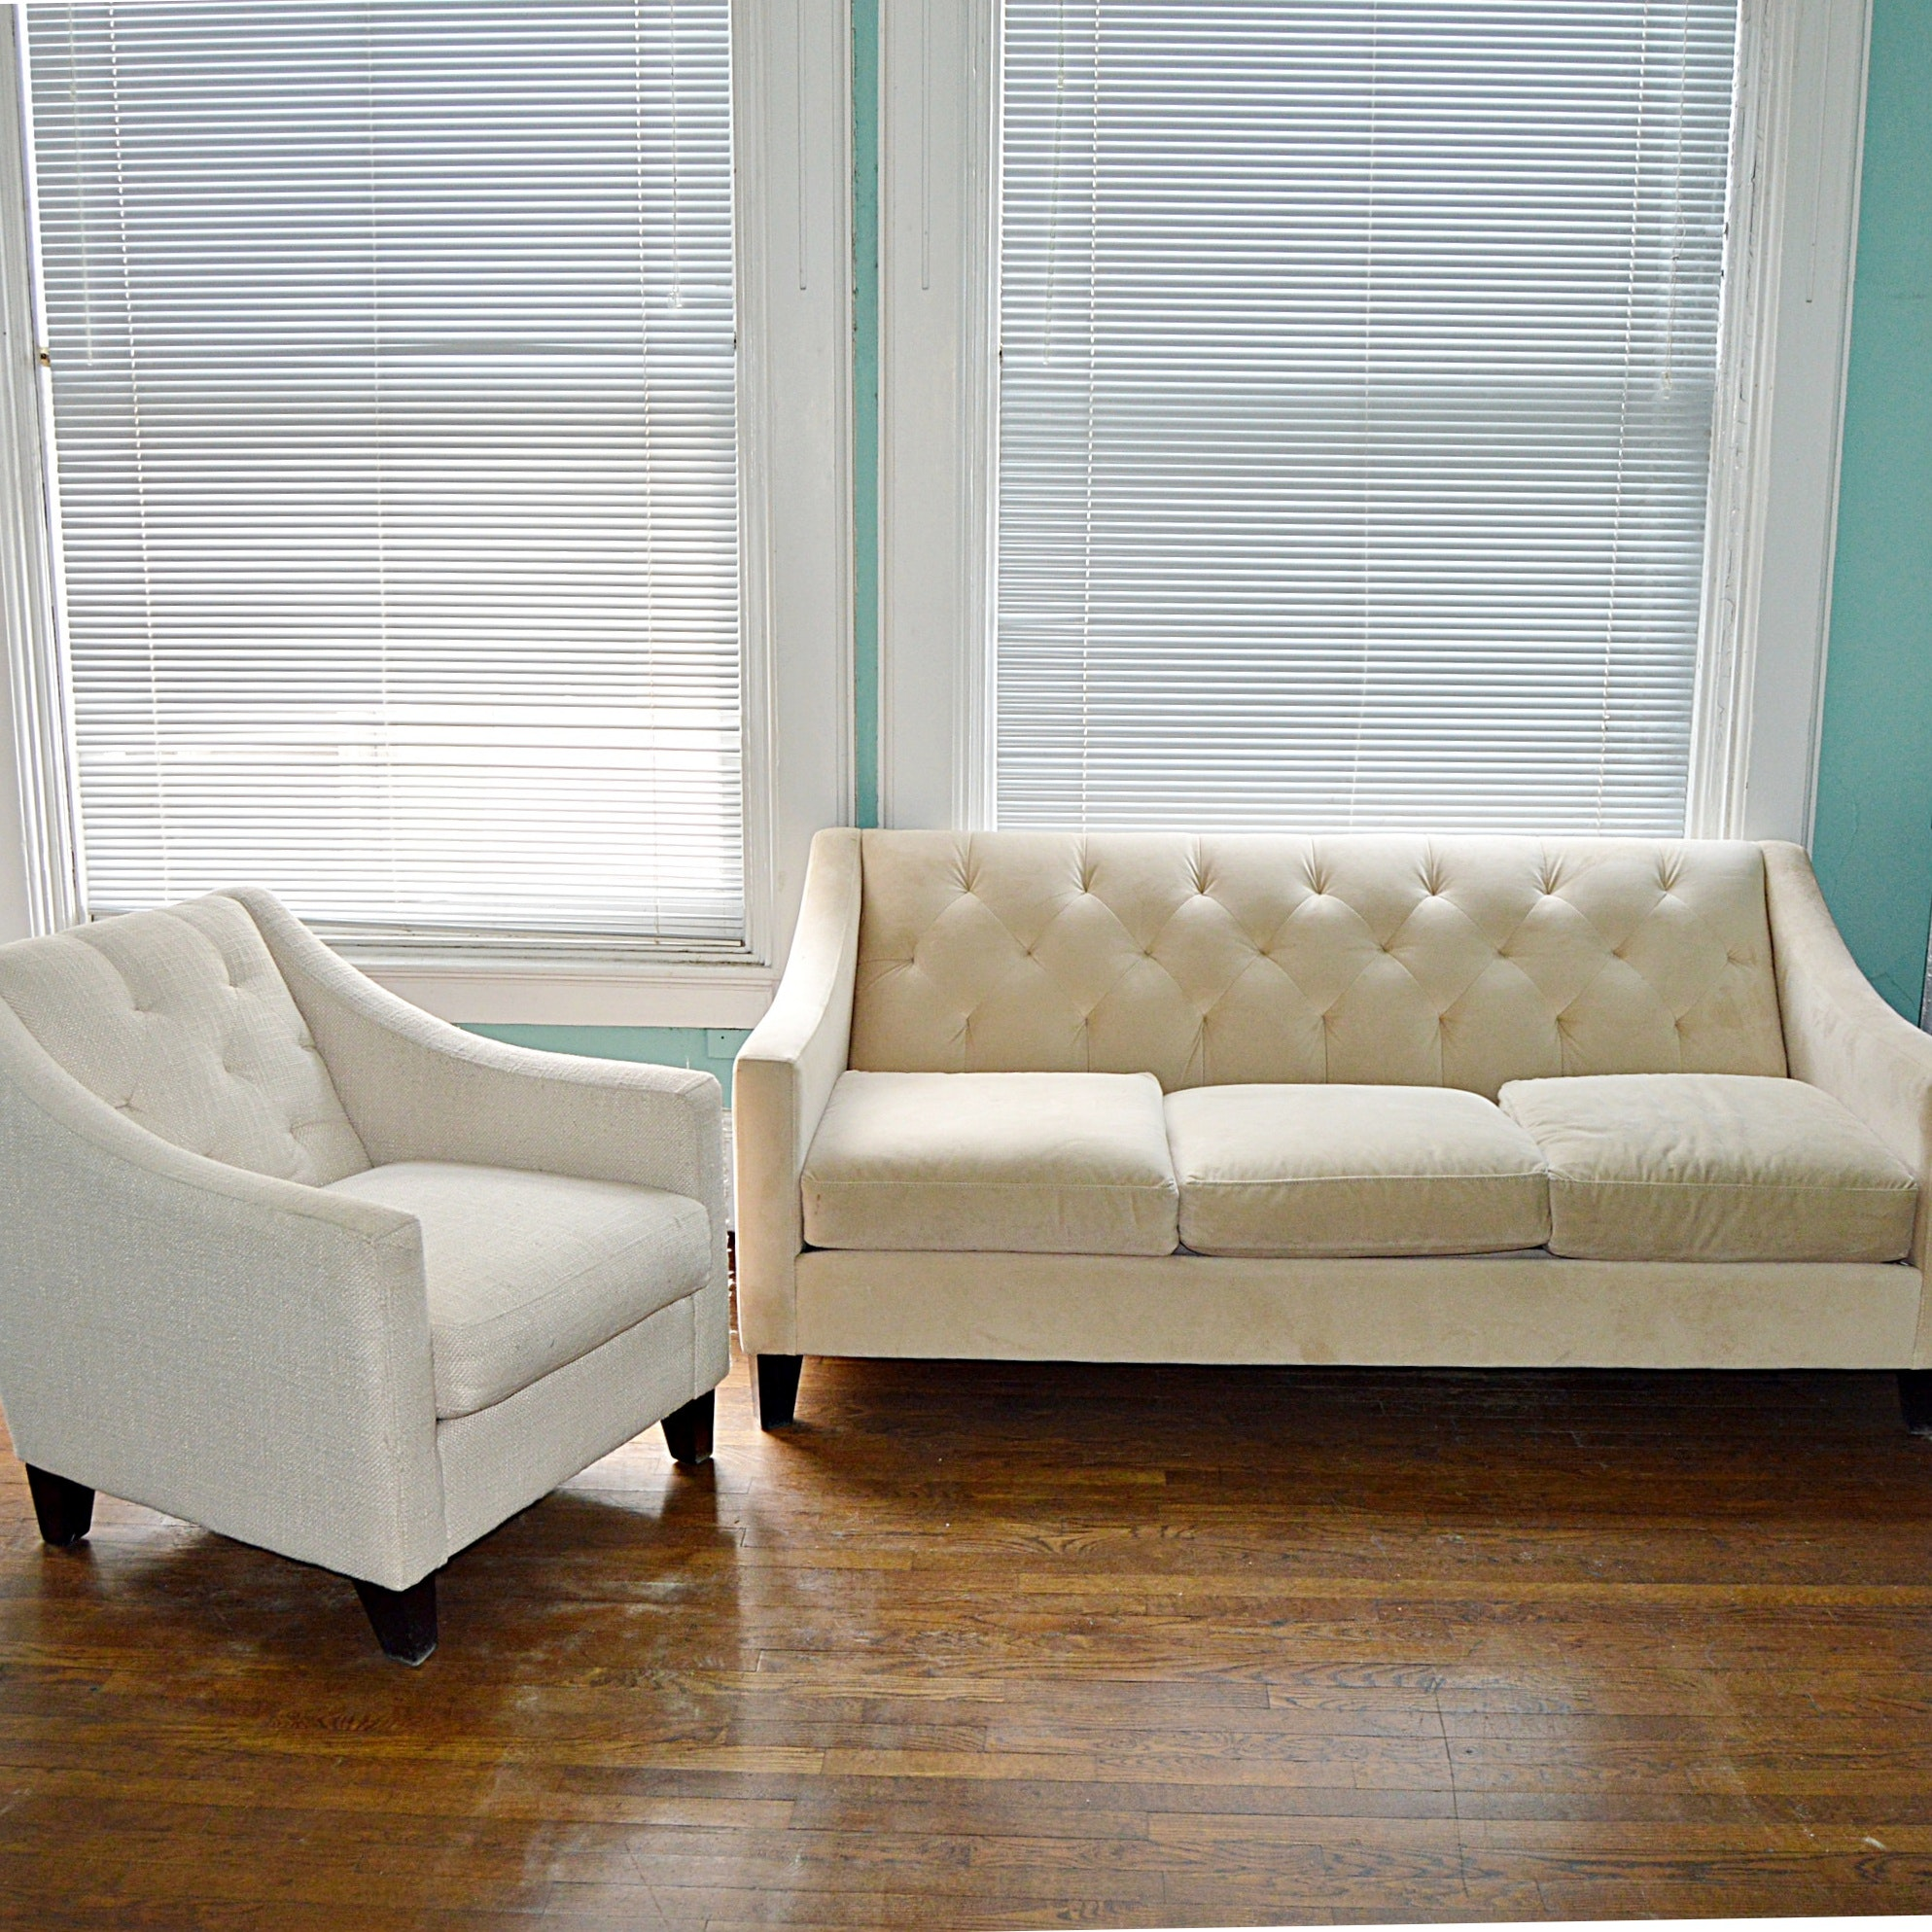 Contemporary Button-Tufted Sofa and Armchair